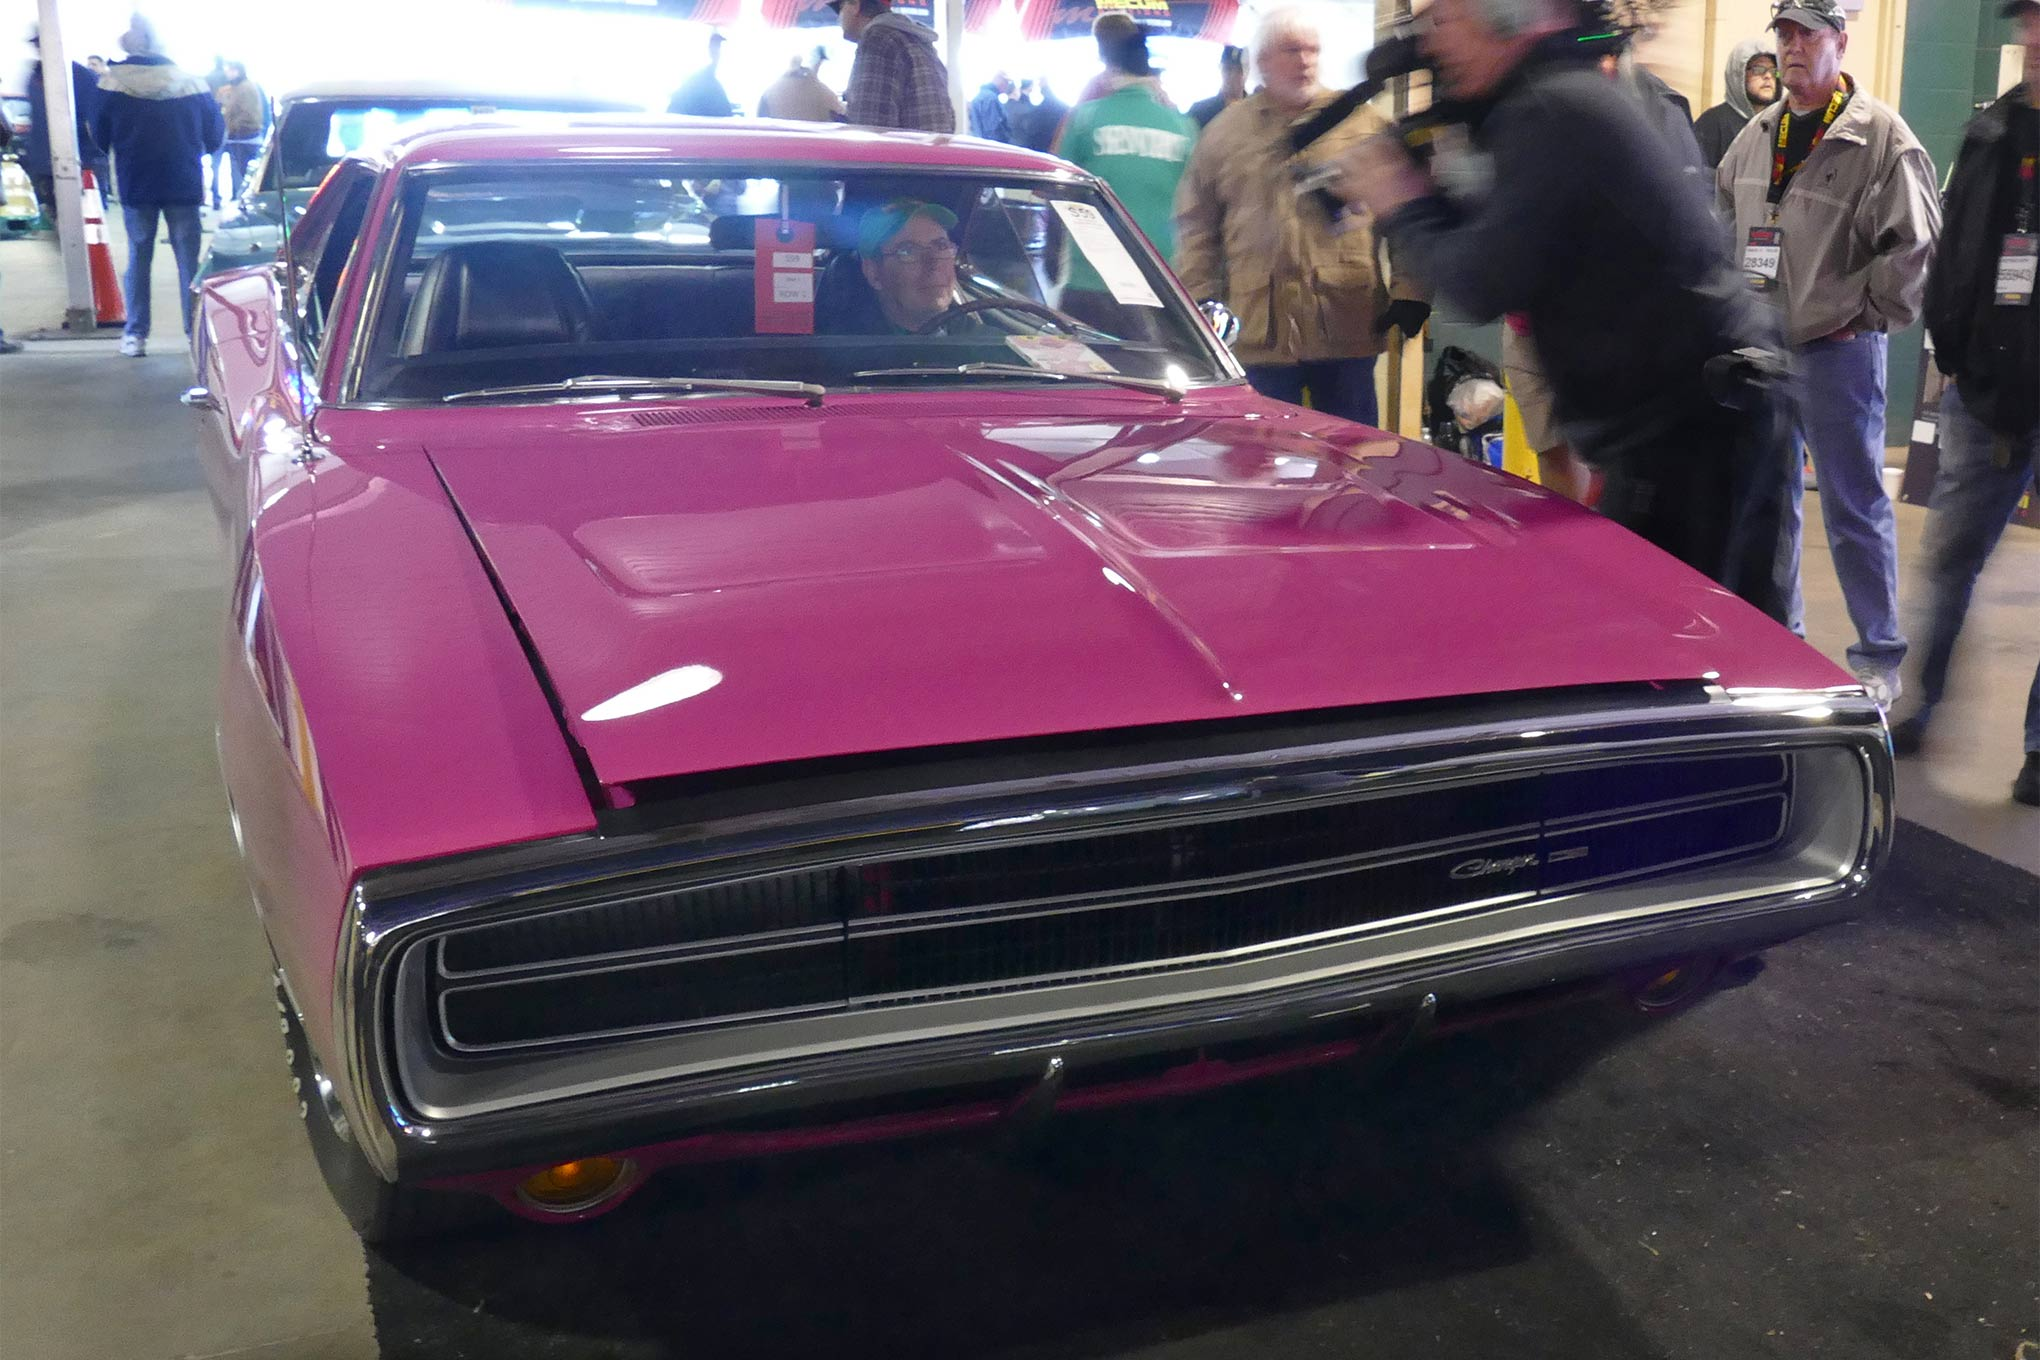 It takes a real man to drive a pink car, and this one cost $72,500. This is a 1970 Charger 500 in FM3 Panther Pink with a 383 four-barrel engine and Pistol Grip four-speed as factory equipment.